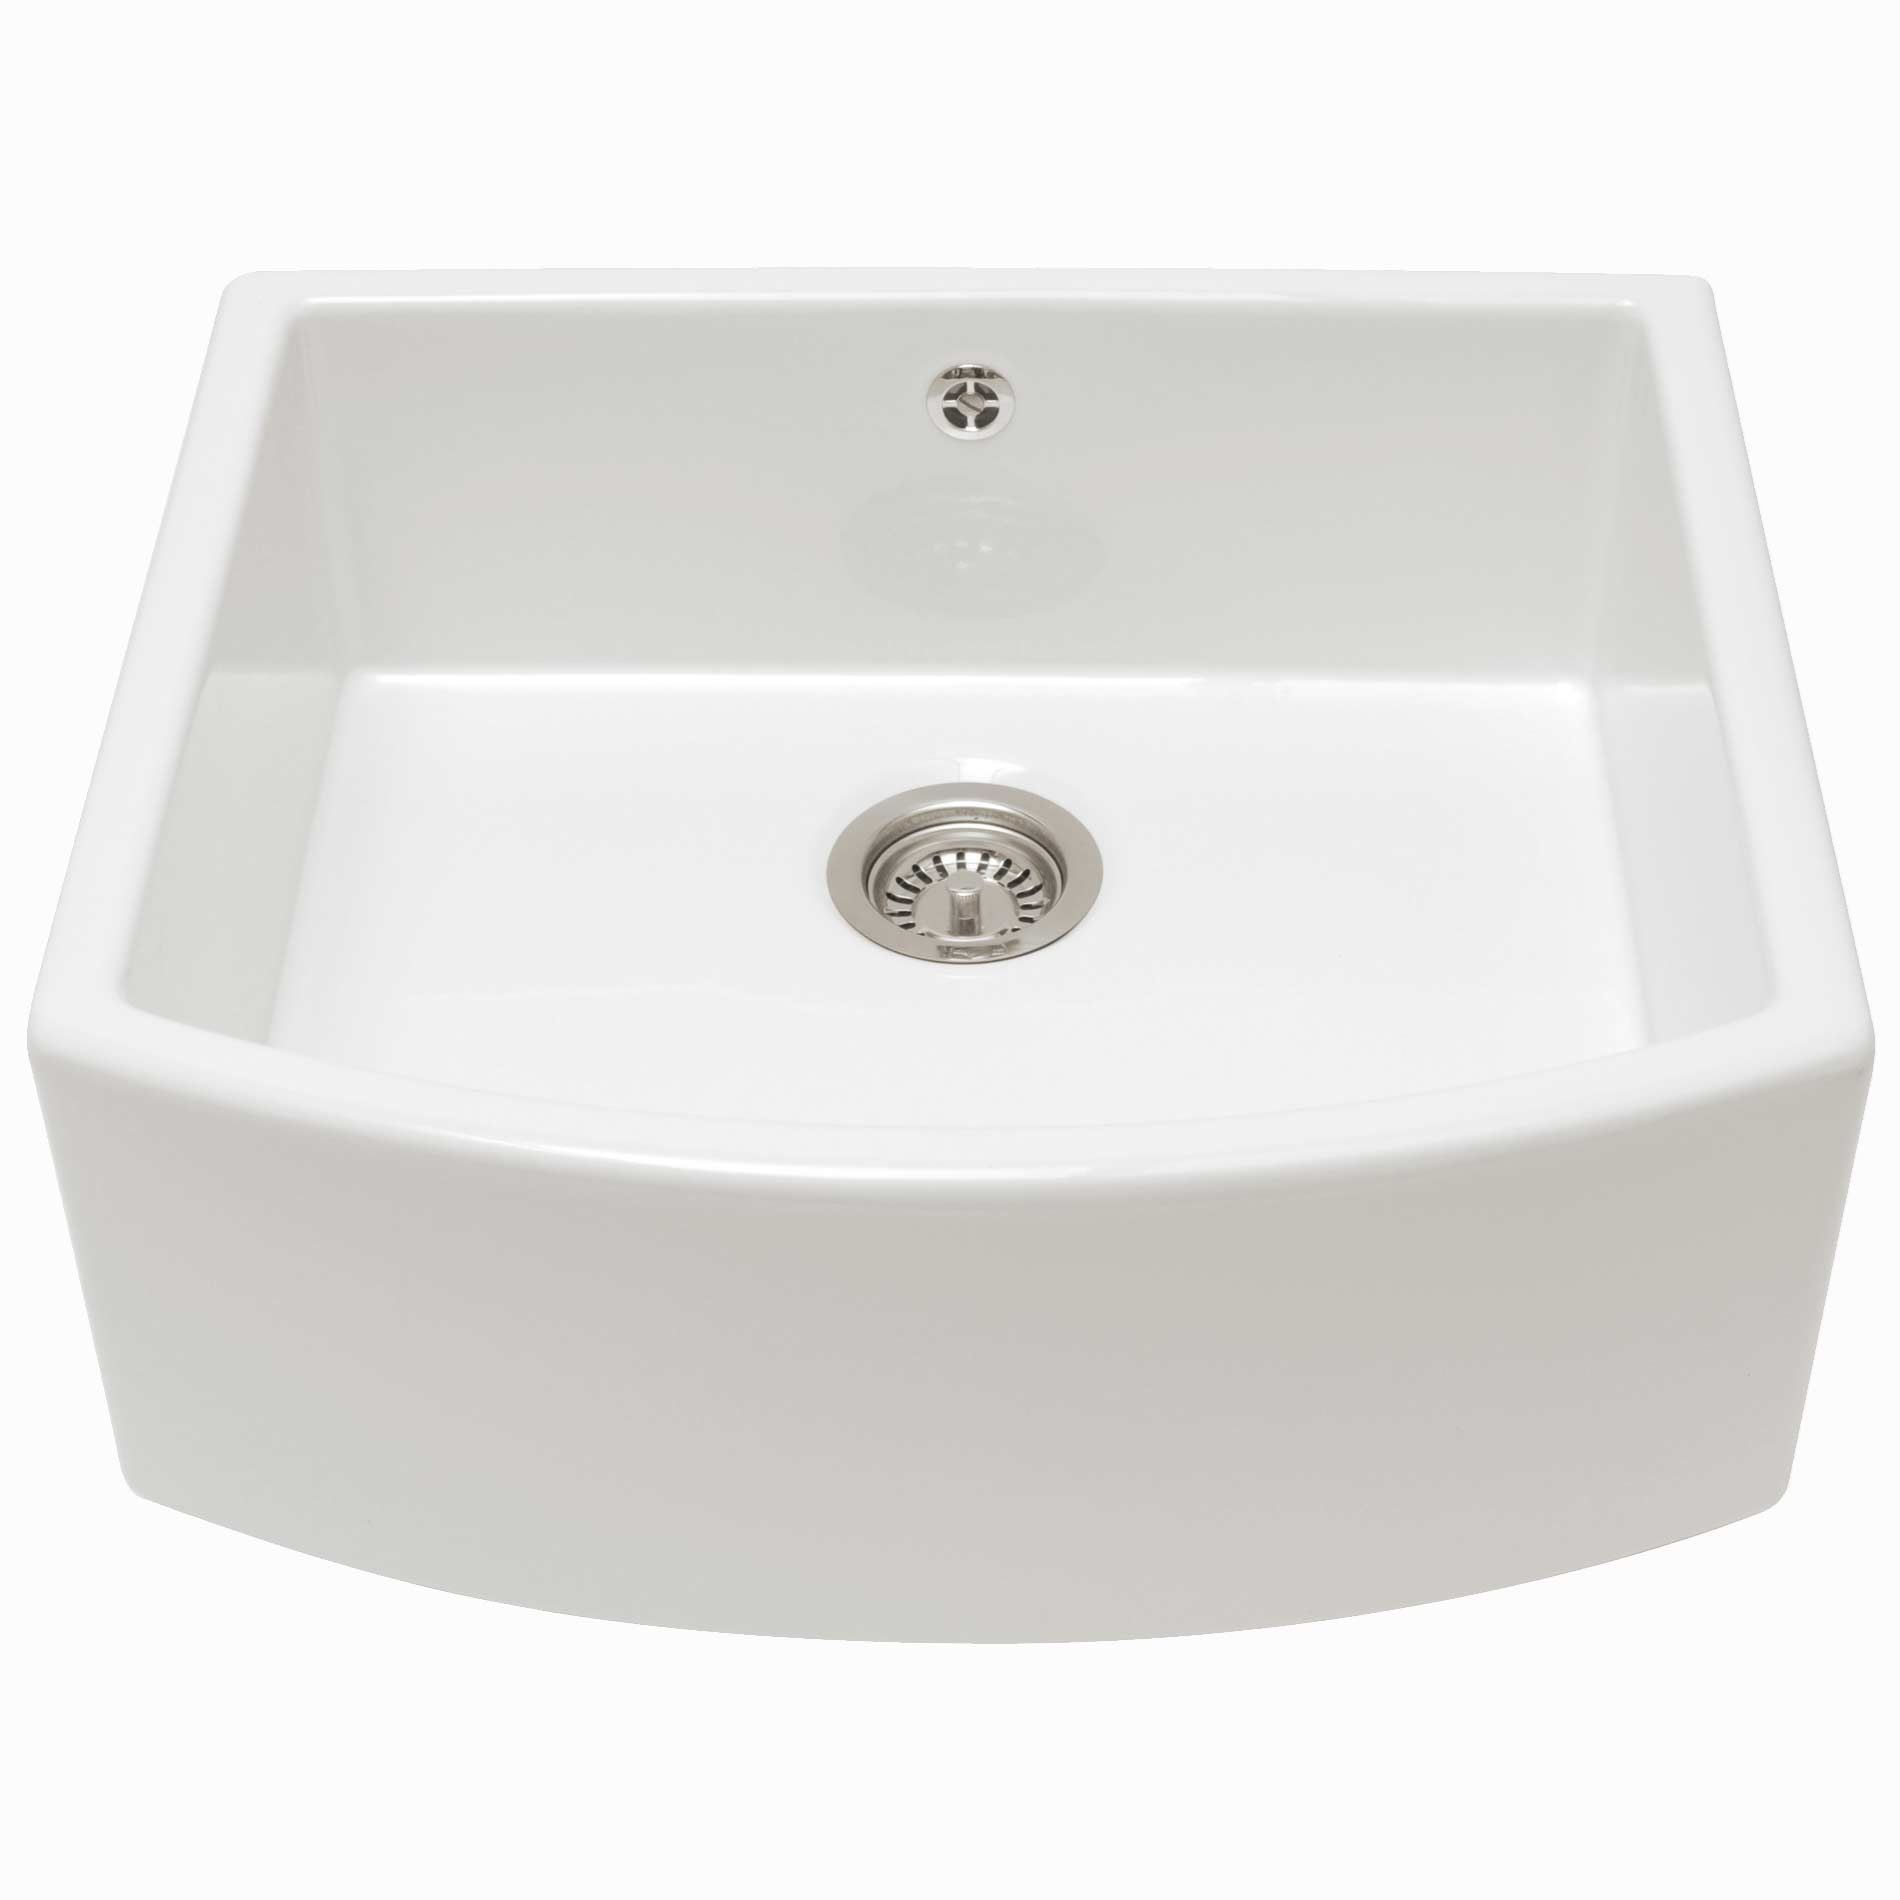 caple: pemberley ceramic single bowl sink - kitchen sinks & taps